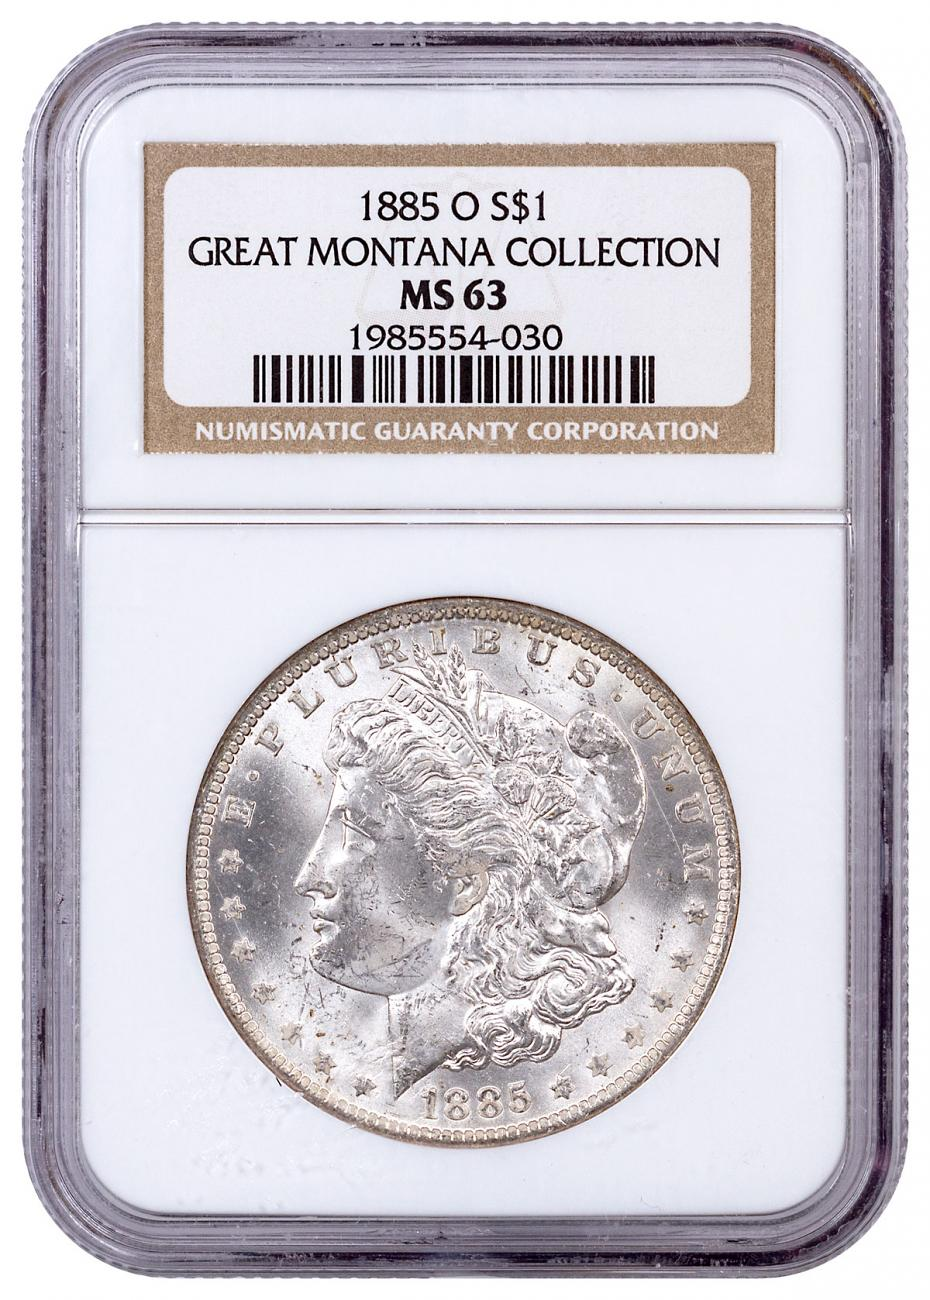 1885-O Morgan Silver Dollar From the Great Montana Collection NGC MS63 Toned CPCR 030